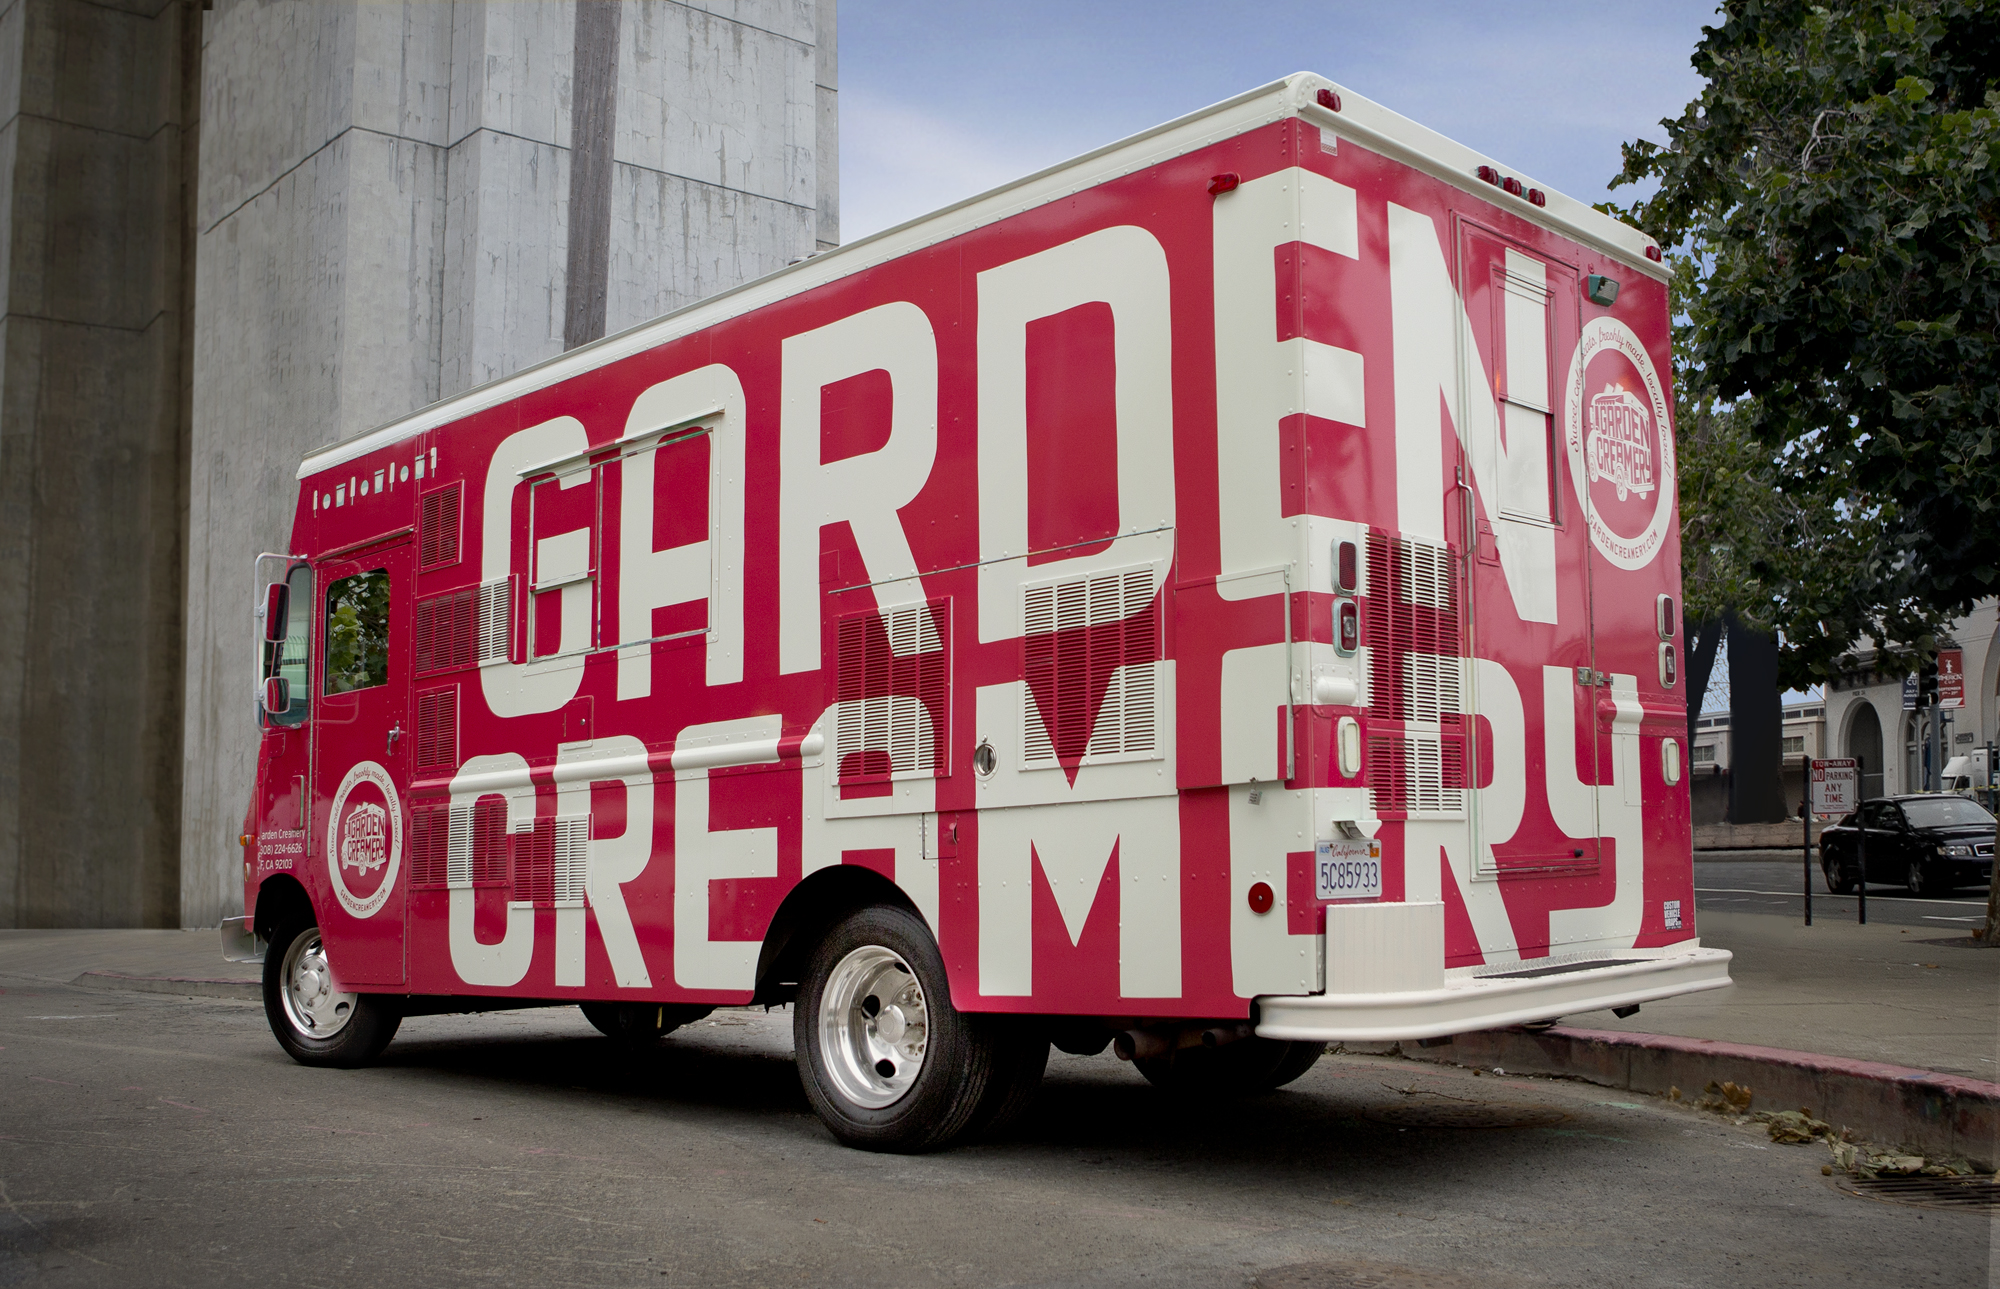 Garden Creamery mobile ice cream truck with pink super graphic wrapped around the side if the truck